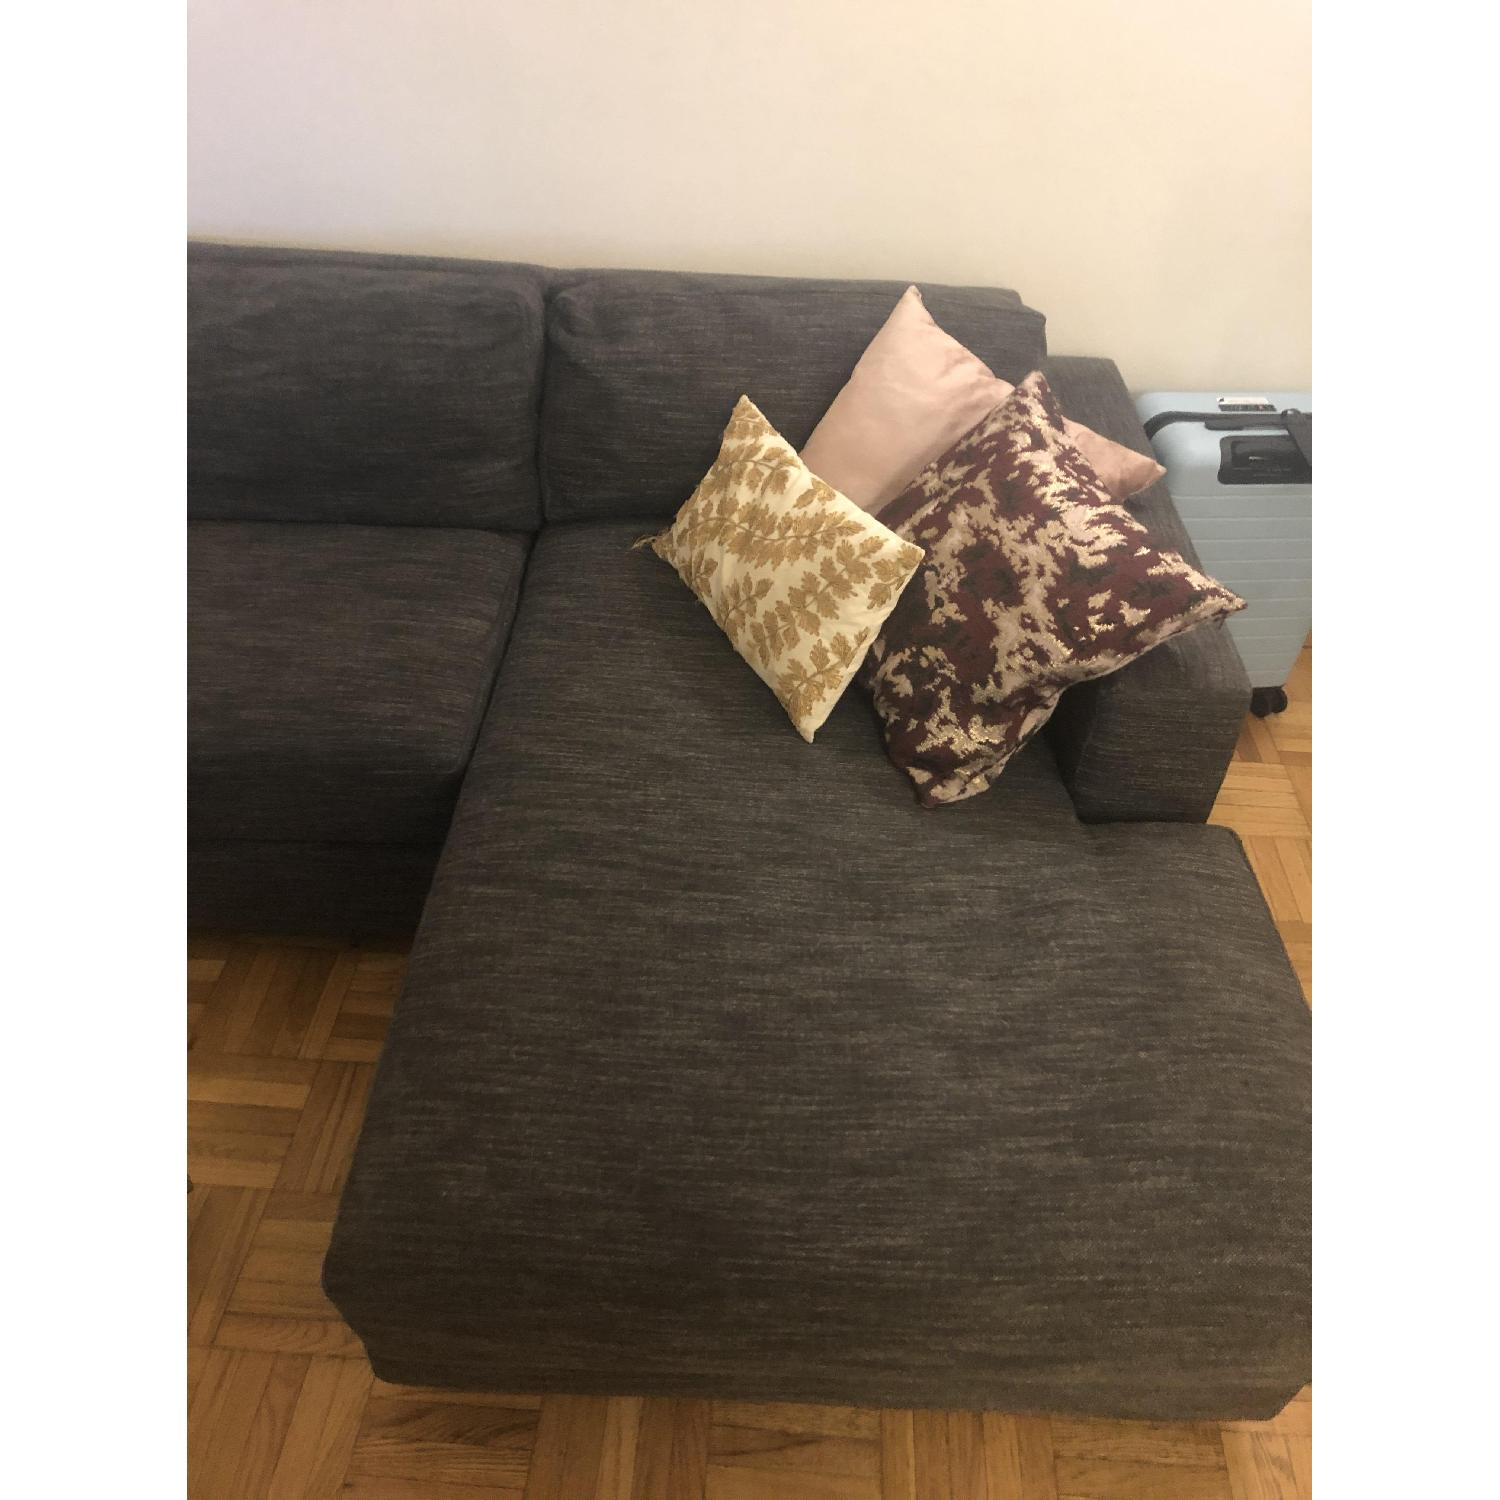 West Elm Urban 2 Piece Large Sectional in Heathered Tweed - image-3